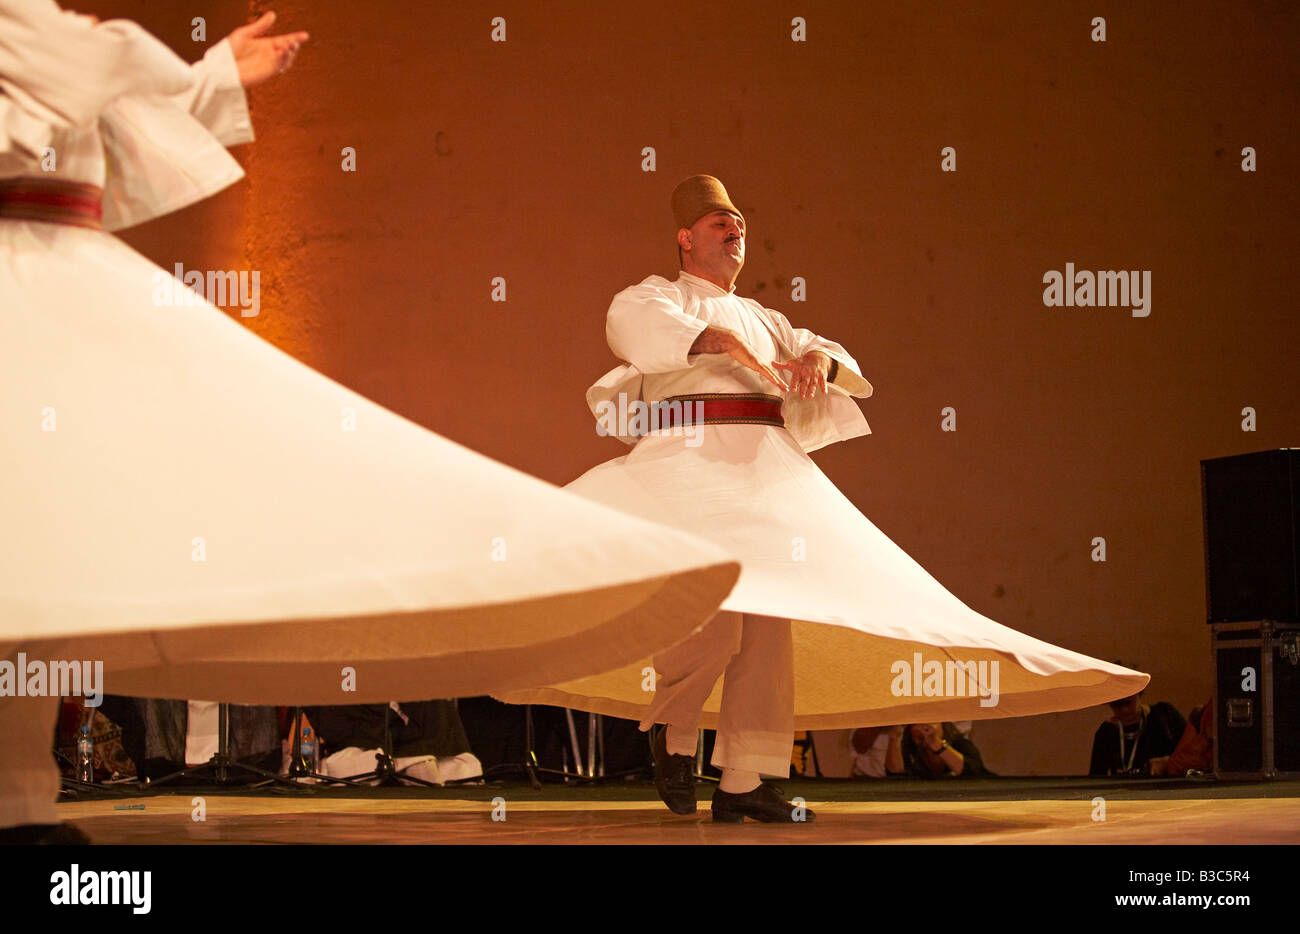 Morocco, Fes. Two whirling Dervishes perform during a concert at the Fes Festival of World Sacred Music. Members - Stock Image